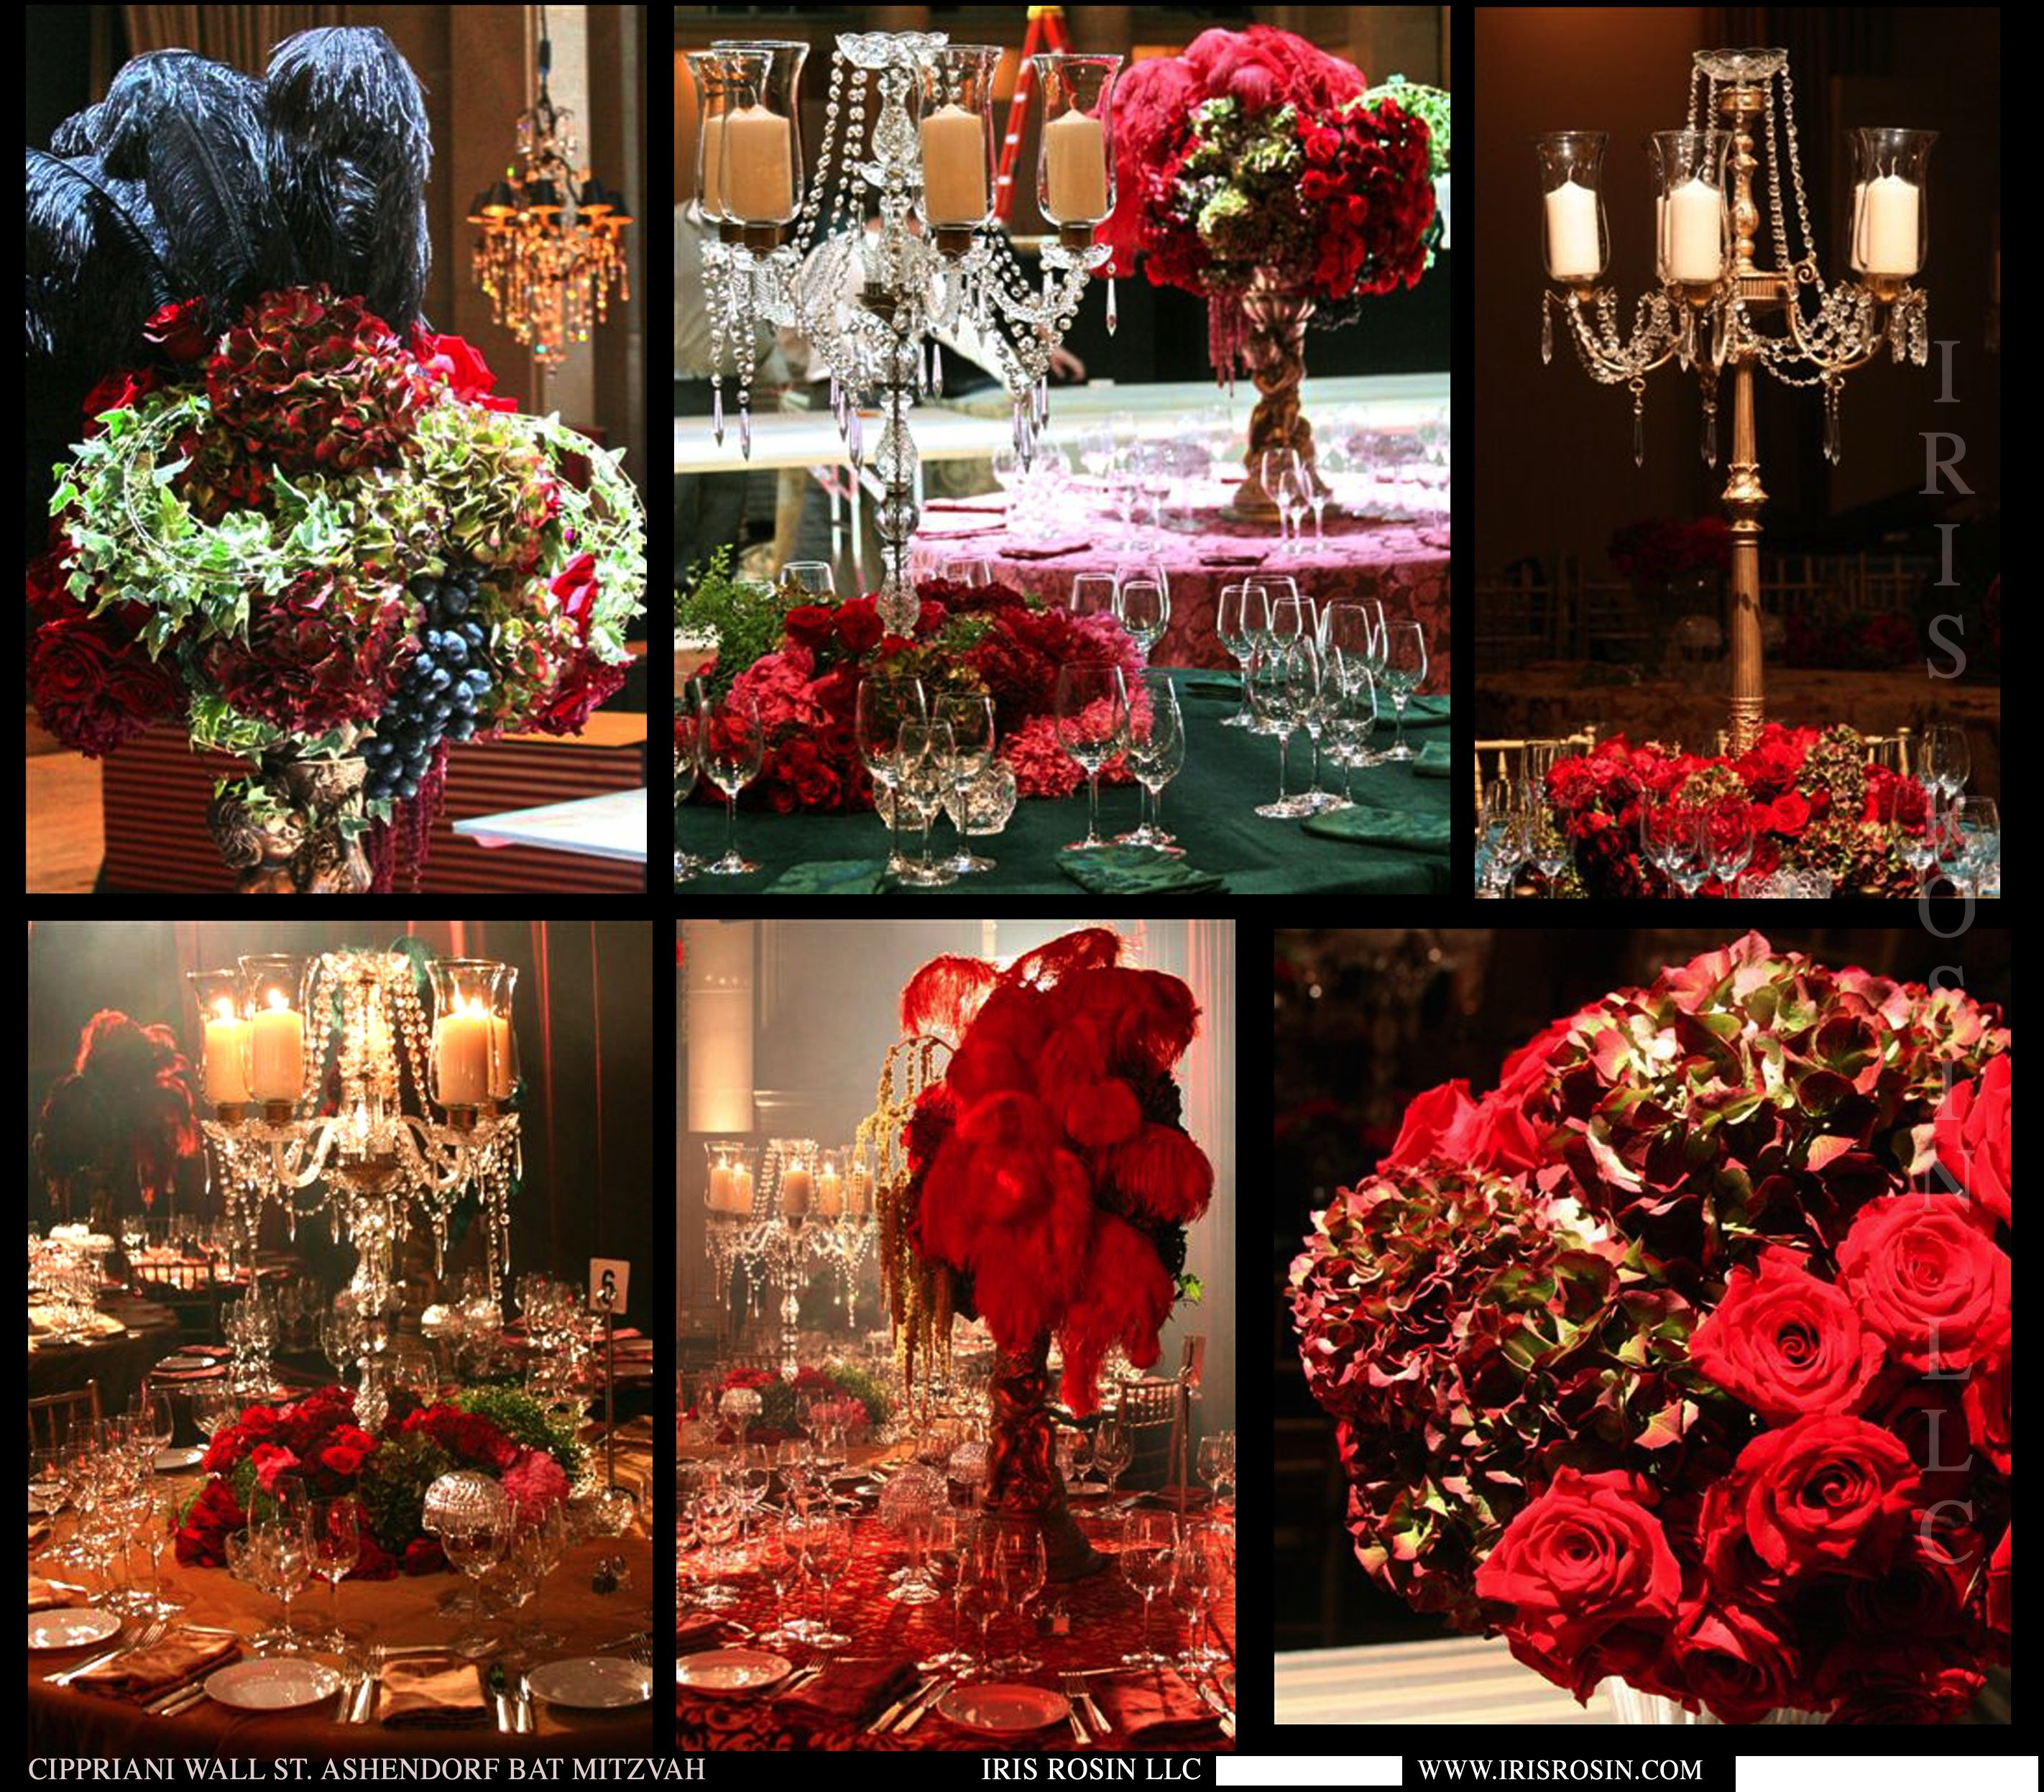 Moulin rouge party moulin rouge party pinterest - Moulin Rouge Theme Gala Party At Cippriani Wall St Www Irisrosin Com